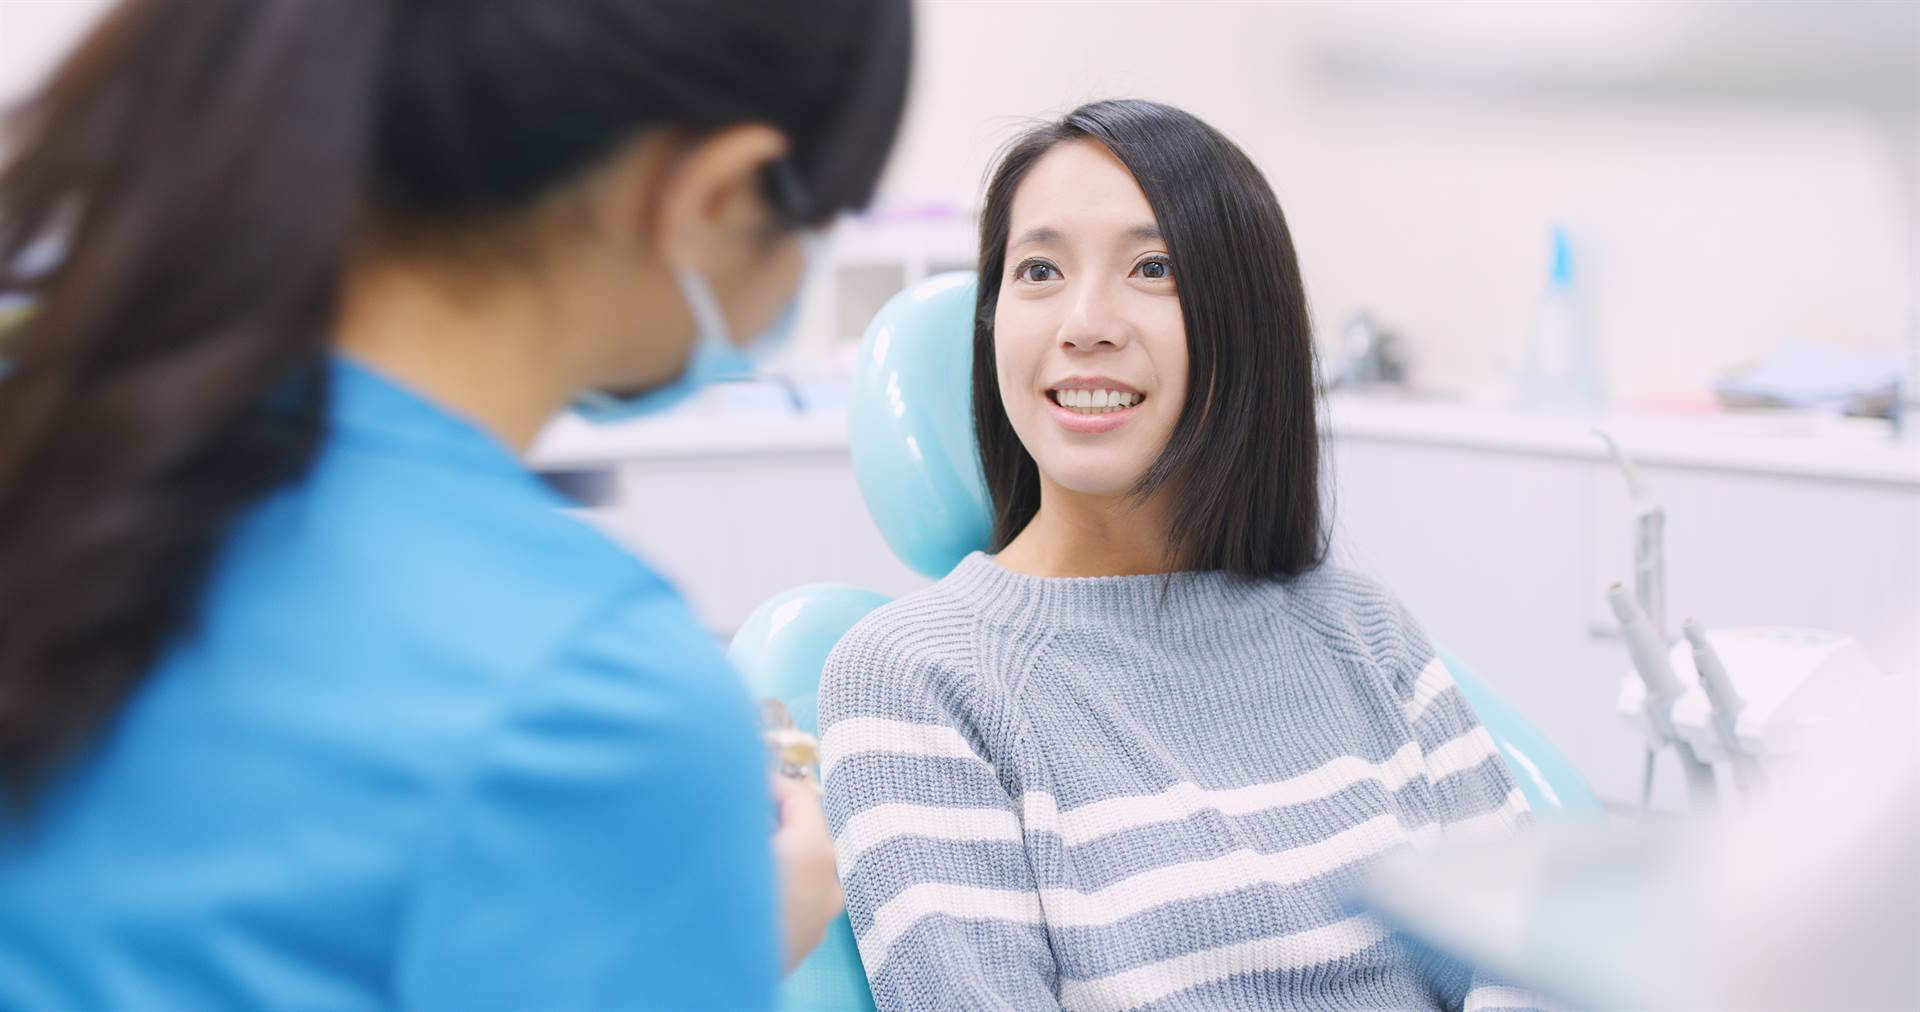 Woman in dental chair smiling and talking to a dental professional